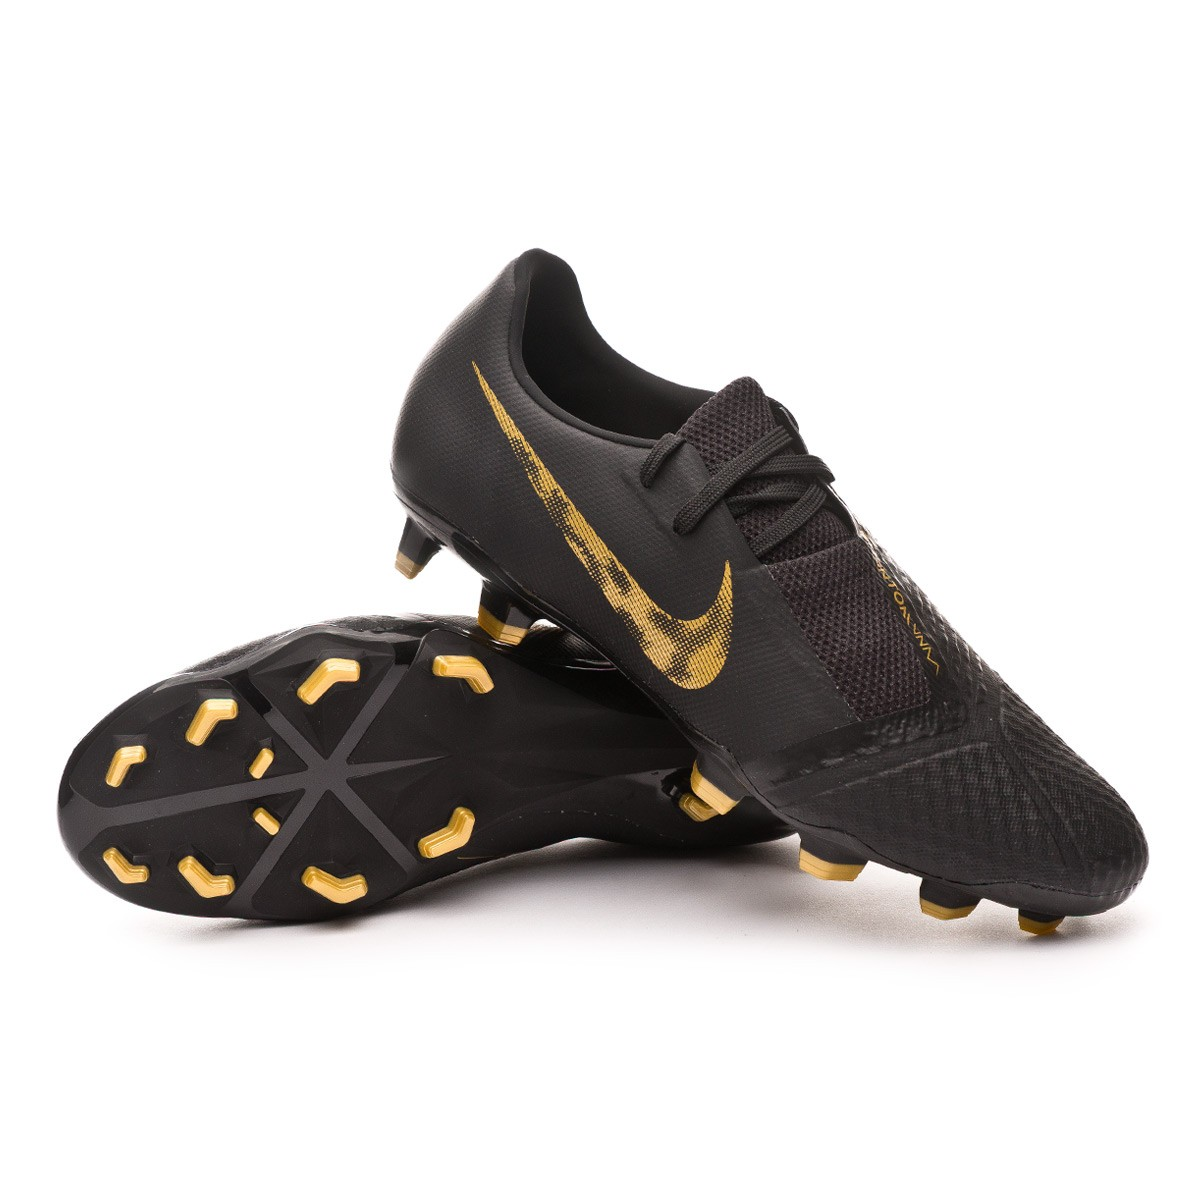 dfa2789f52 Football Boots Nike Kids Phantom Venom Academy FG Black-Metallic ...